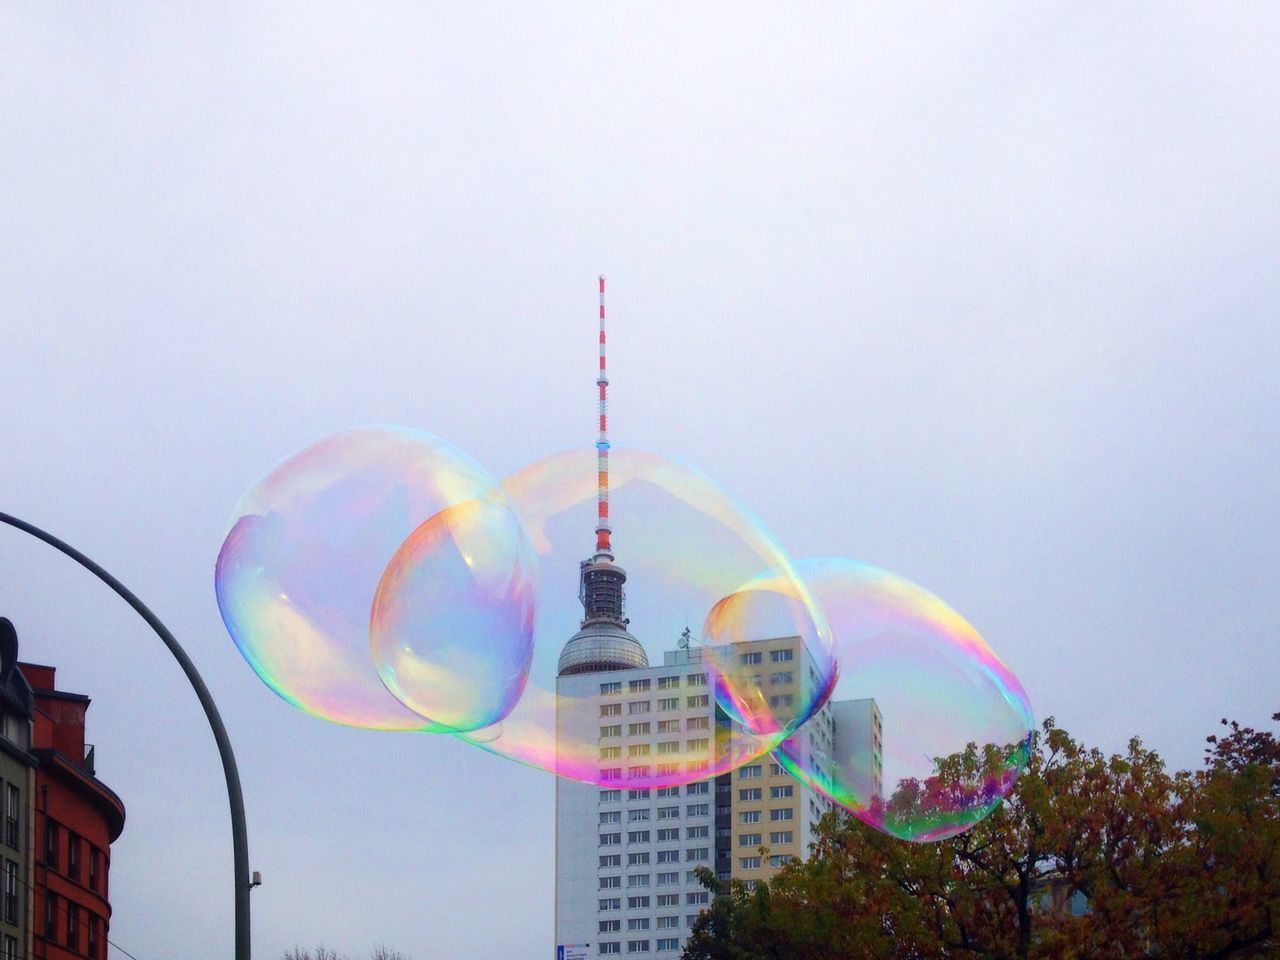 Rainbow Multi Colored Building Exterior Built Structure Sky Low Angle View Outdoors Architecture Double Rainbow Day Real People Nature People Bubbles Soap Soap Bubbles Tvtower Tvtowerberlin The Street Photographer - 2017 EyeEm Awards